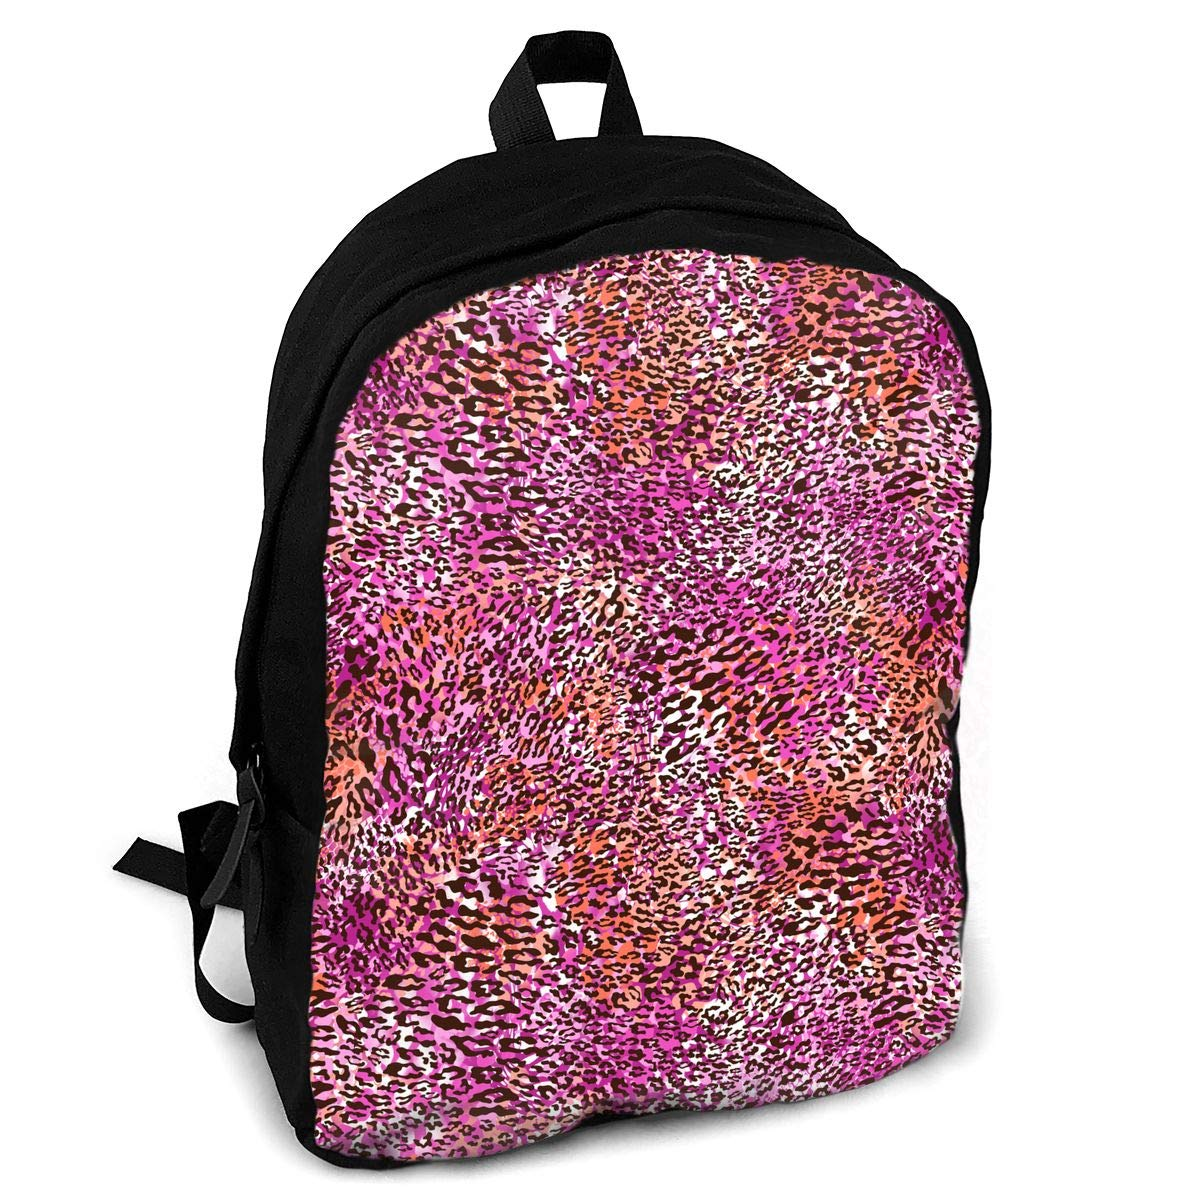 Fsxik pink orange leopard skin boys girls school rucksack college bookbag  lady travel backpack laptop bags 20b52dc0cffe8